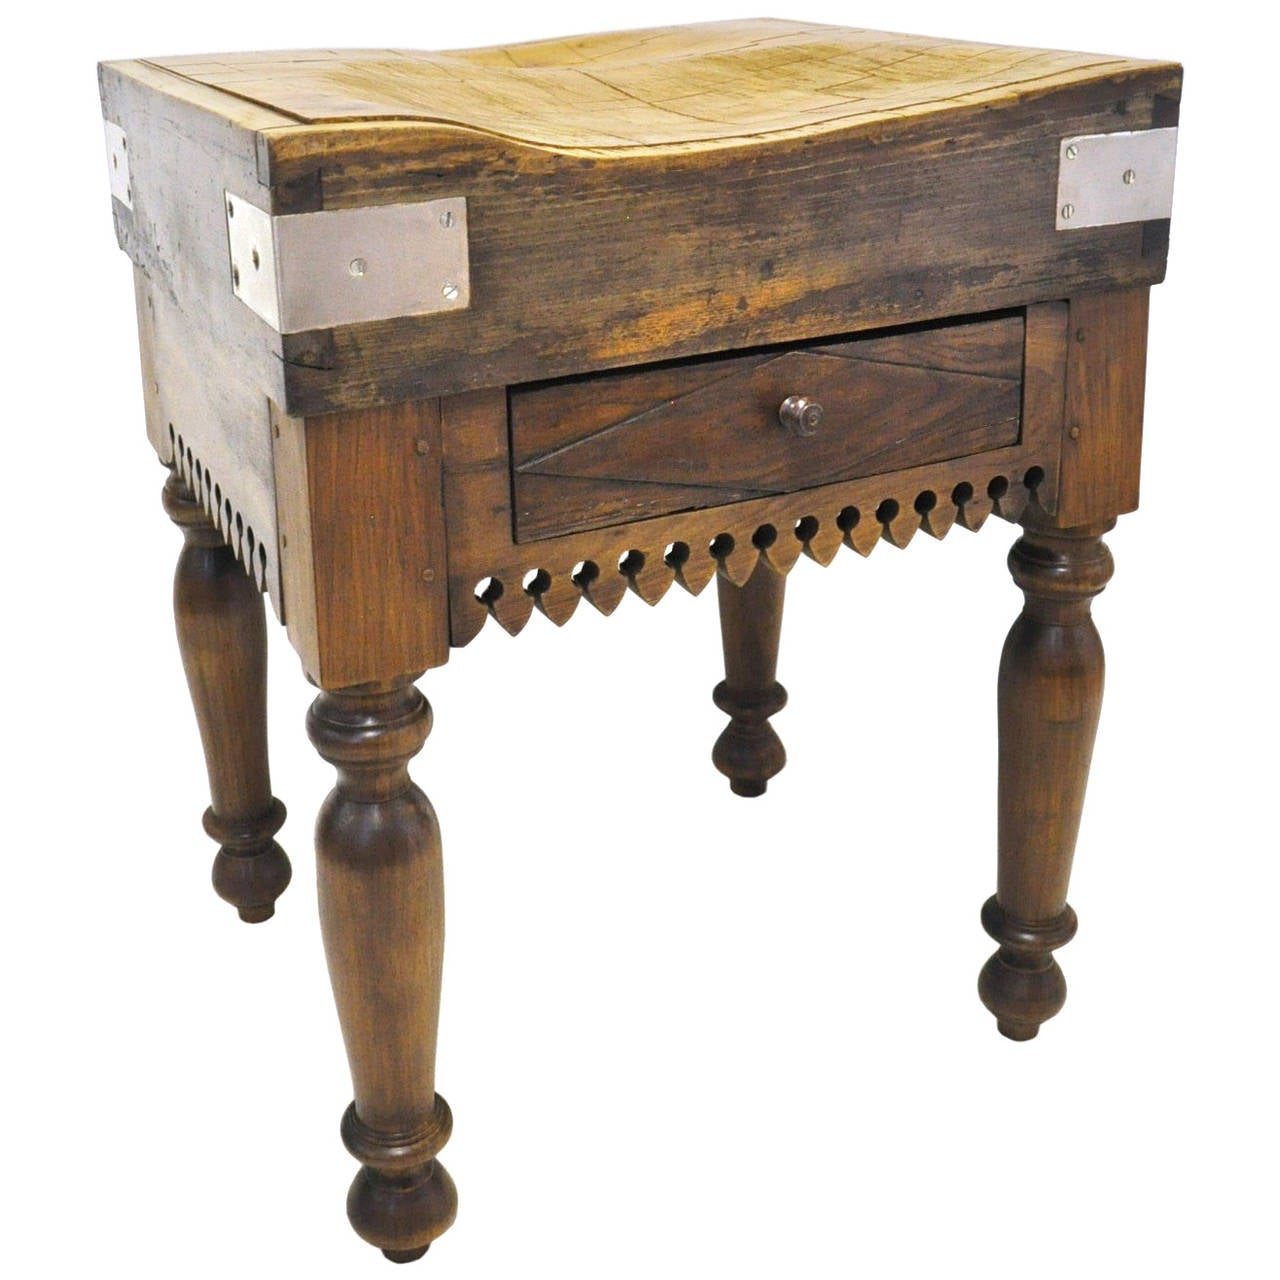 French antique wood butcher block table at stdibs